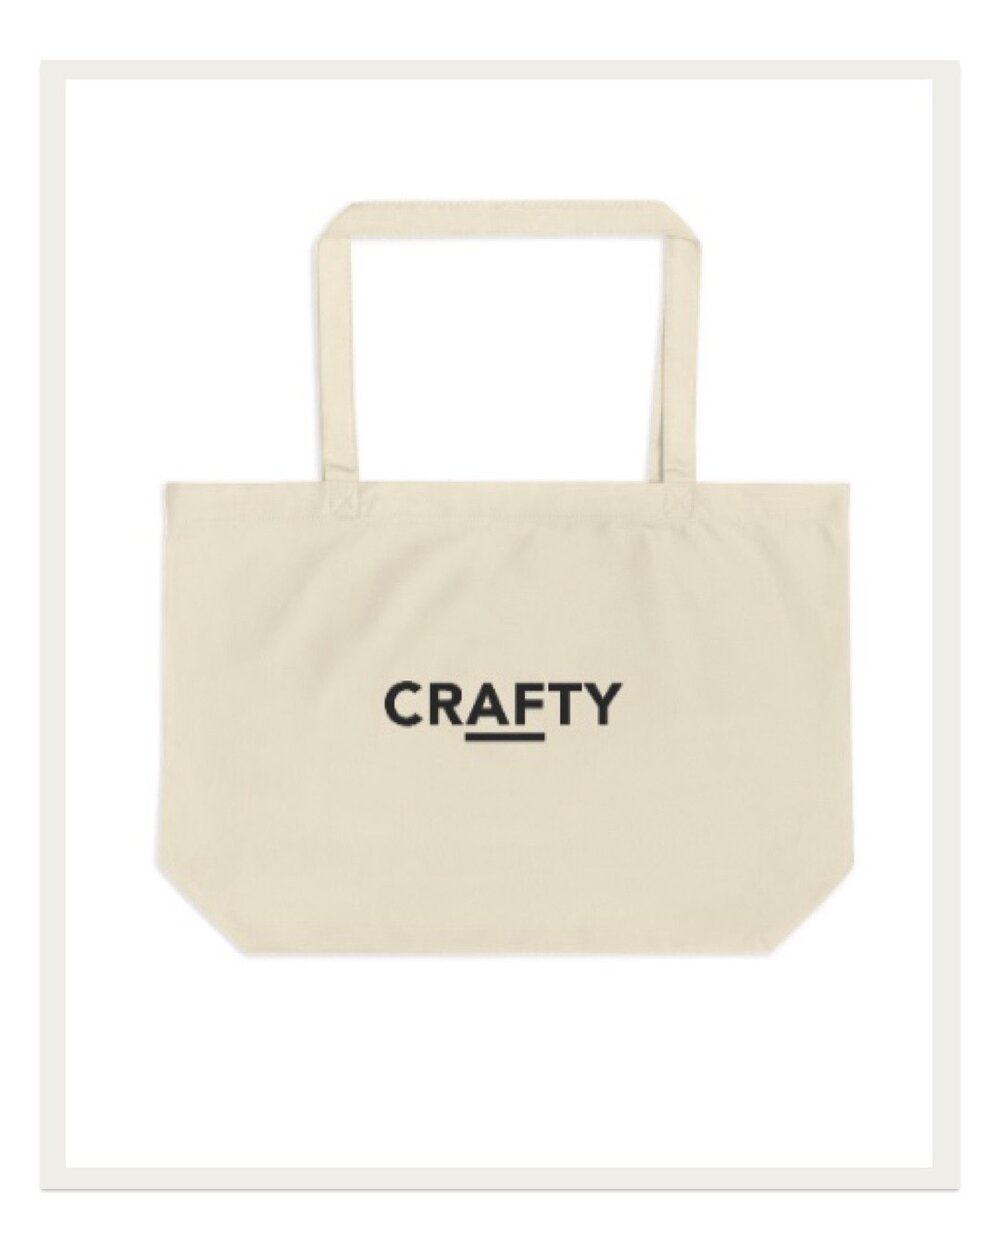 Make a statement with the Crafty AF oversized tote from the Two of Wands maker merch line. I love the oversized silhouette of this tote to easily take my project on the go.